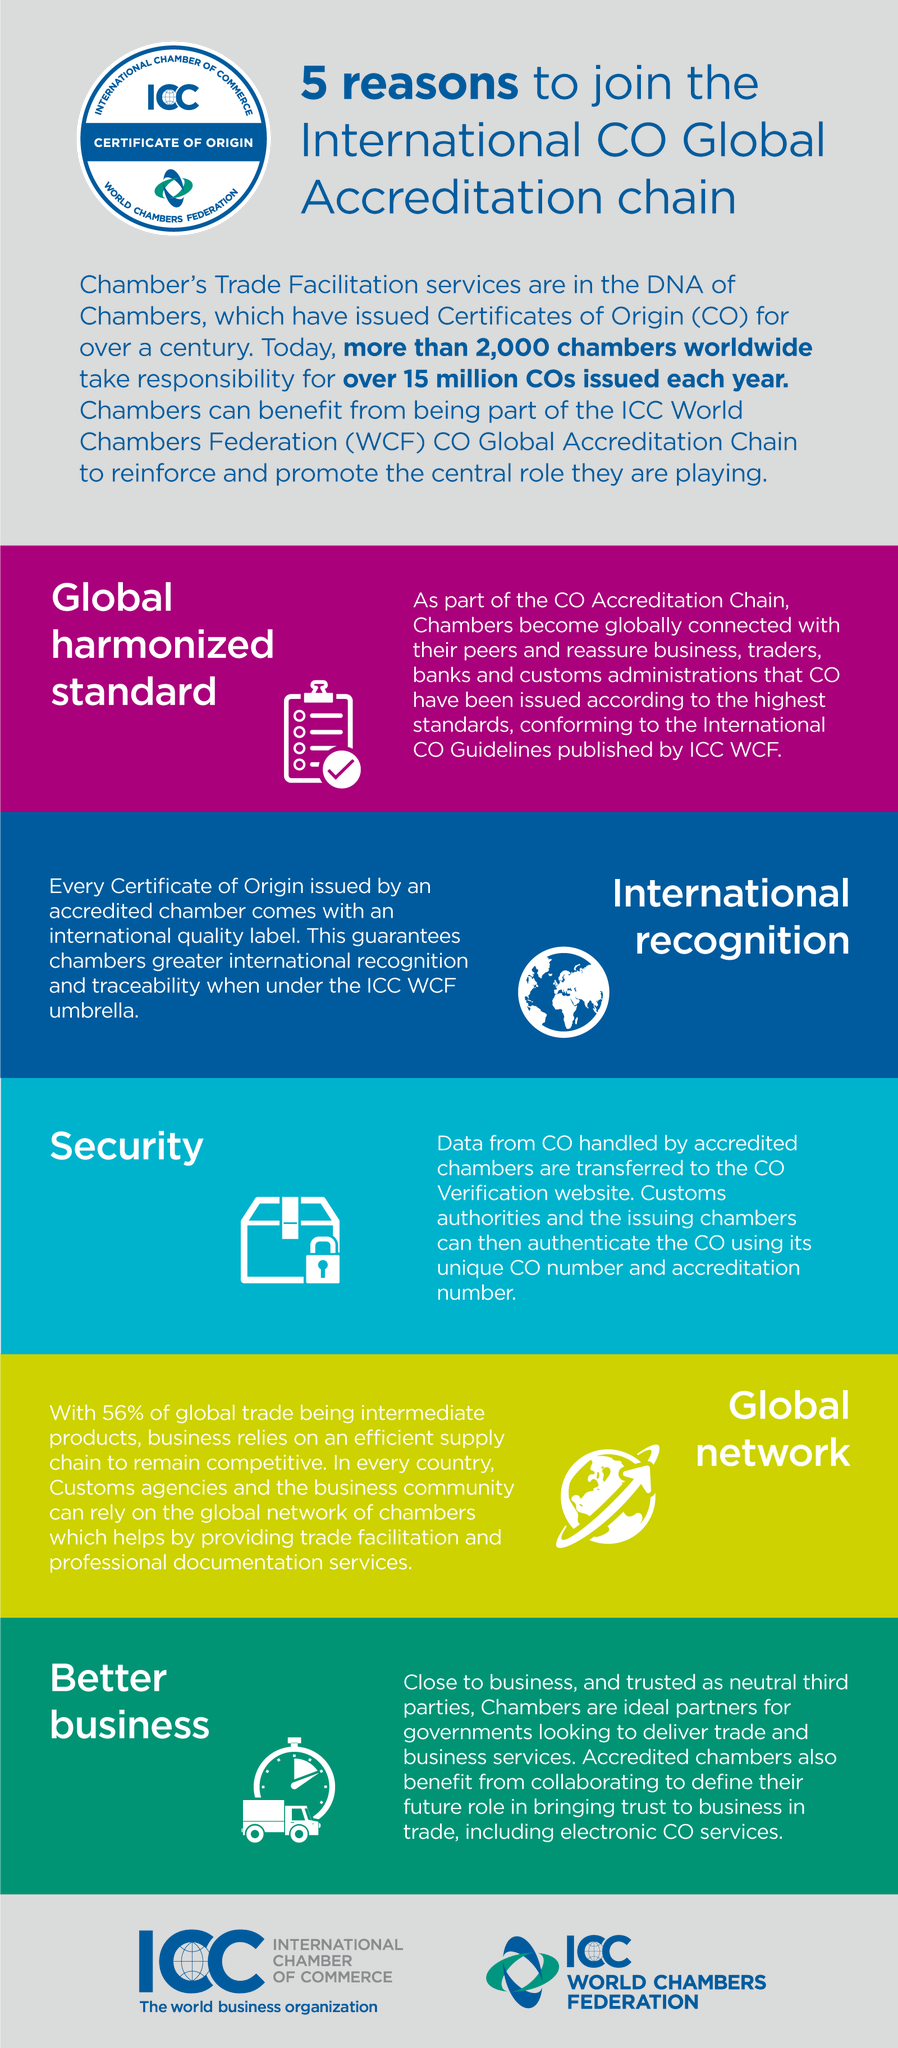 5 reasons to join the International CO global Accreditation Chain